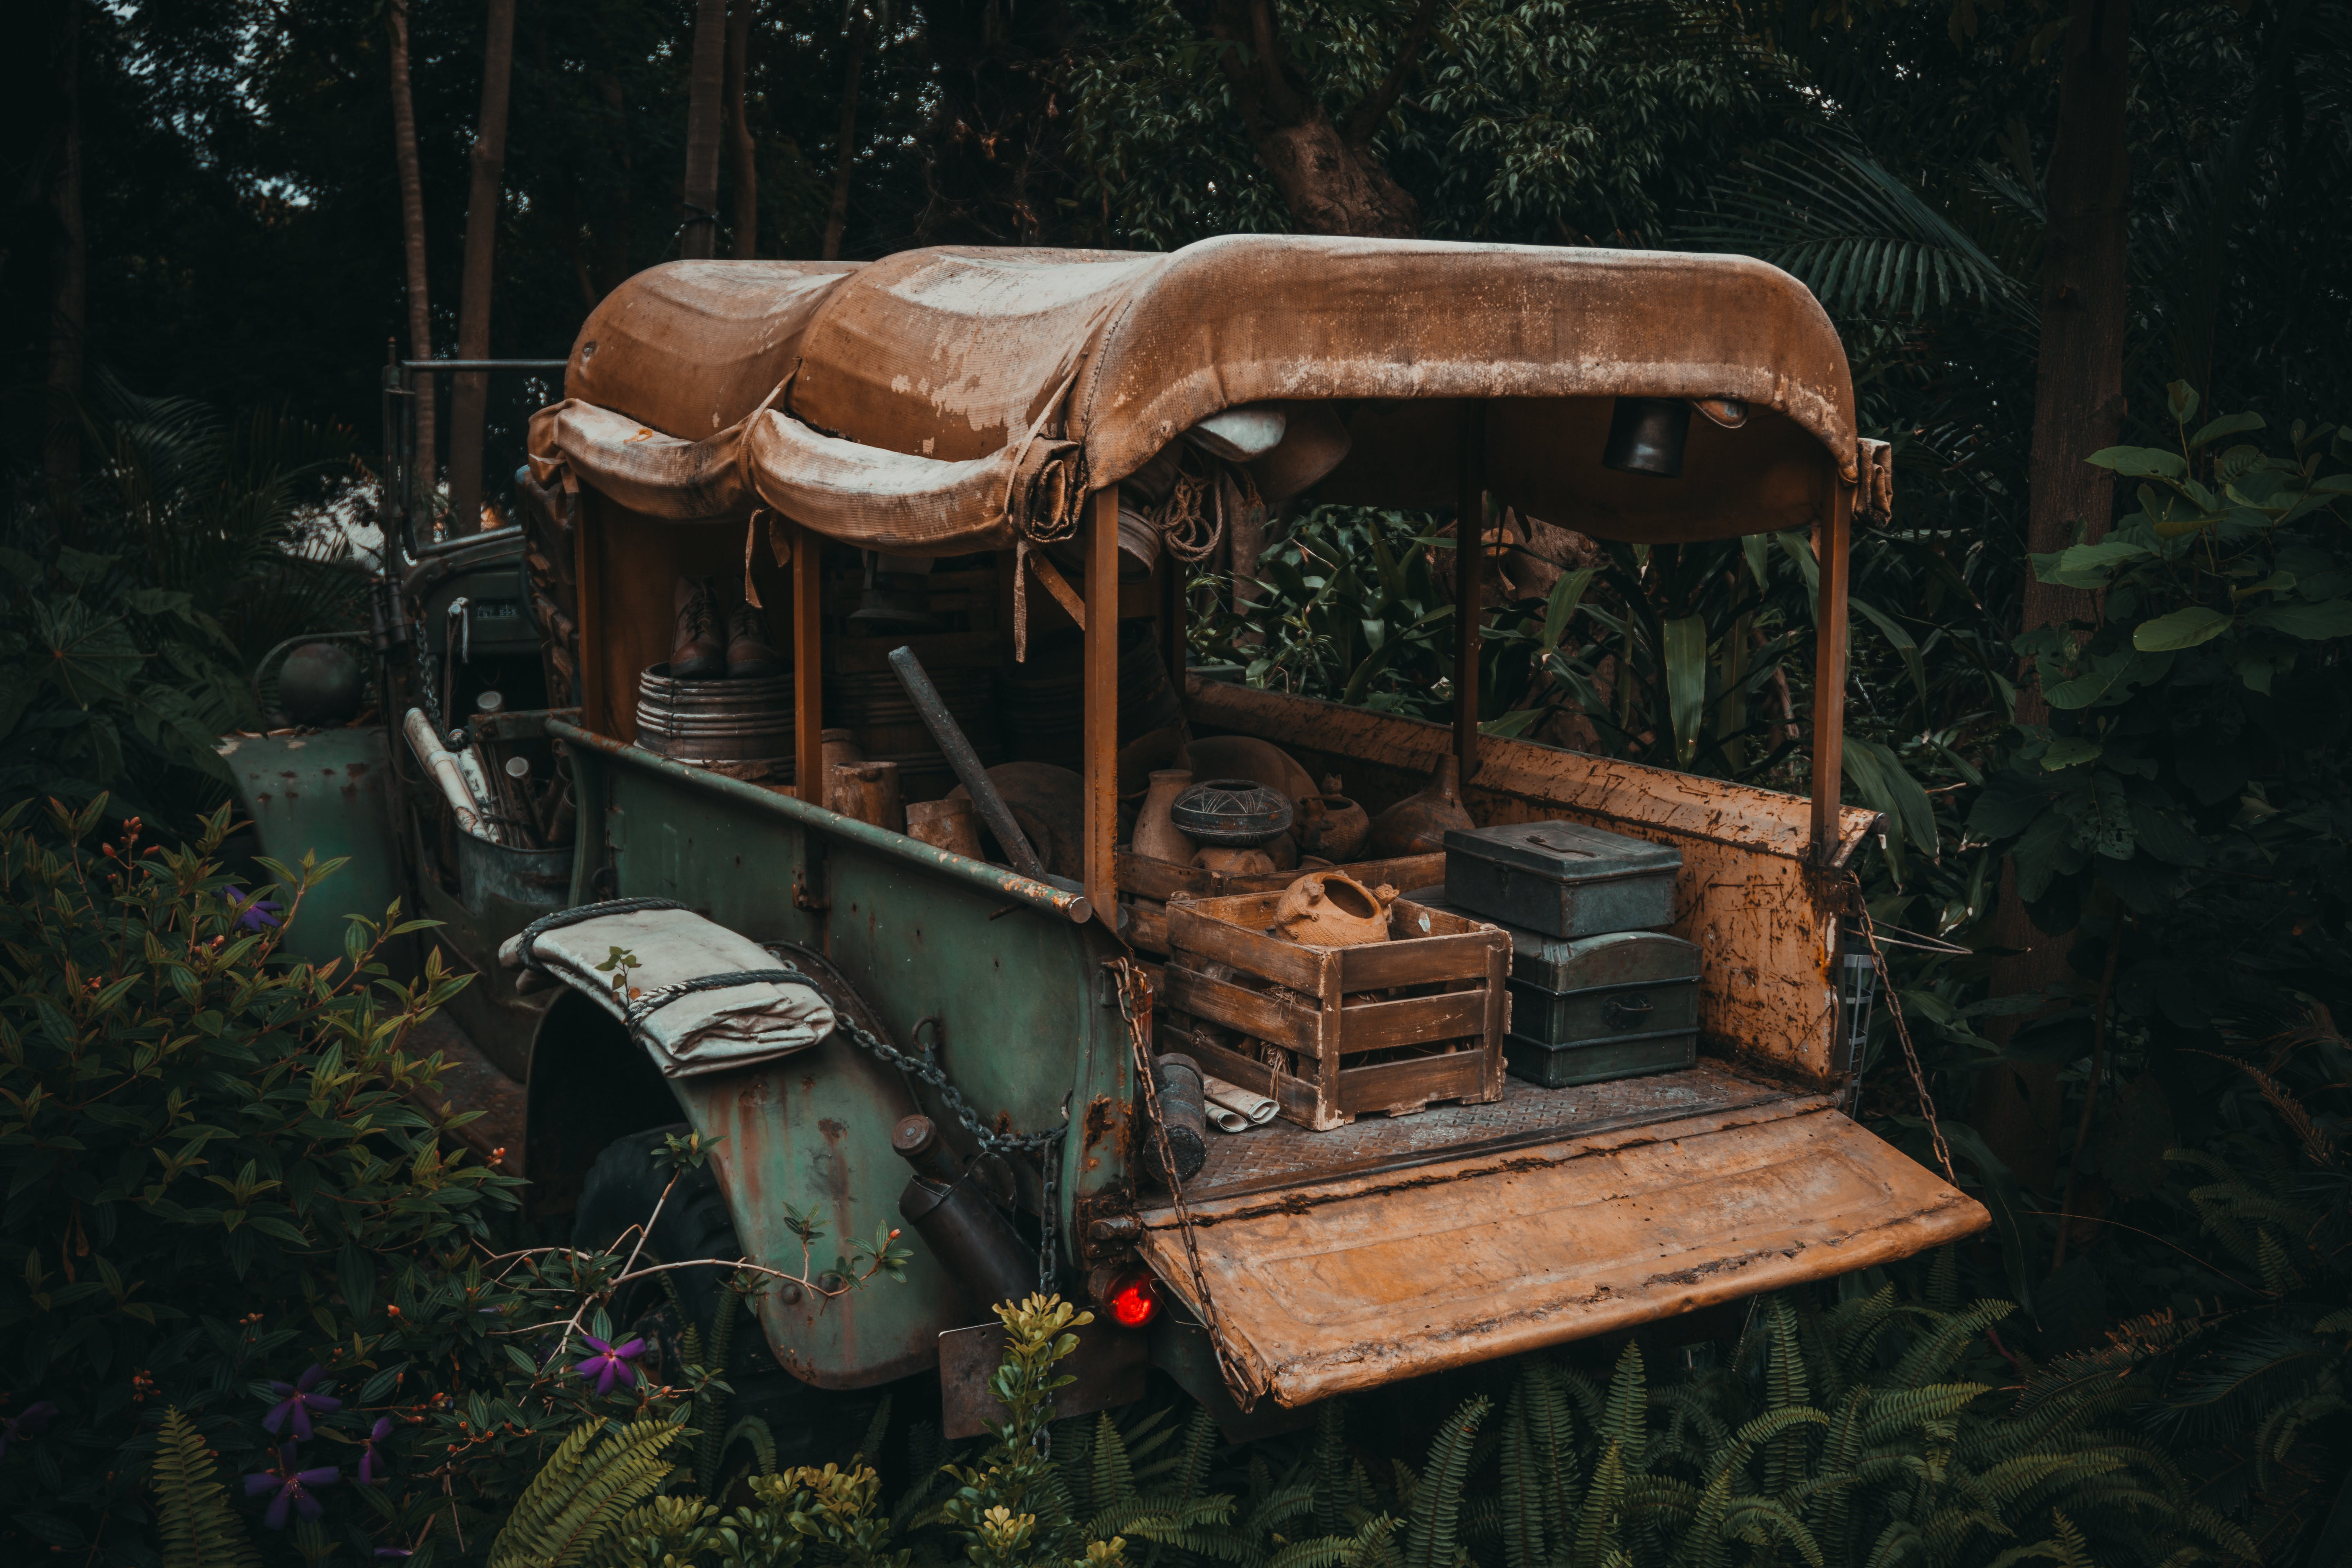 Green and Brown Vehicle in Forest